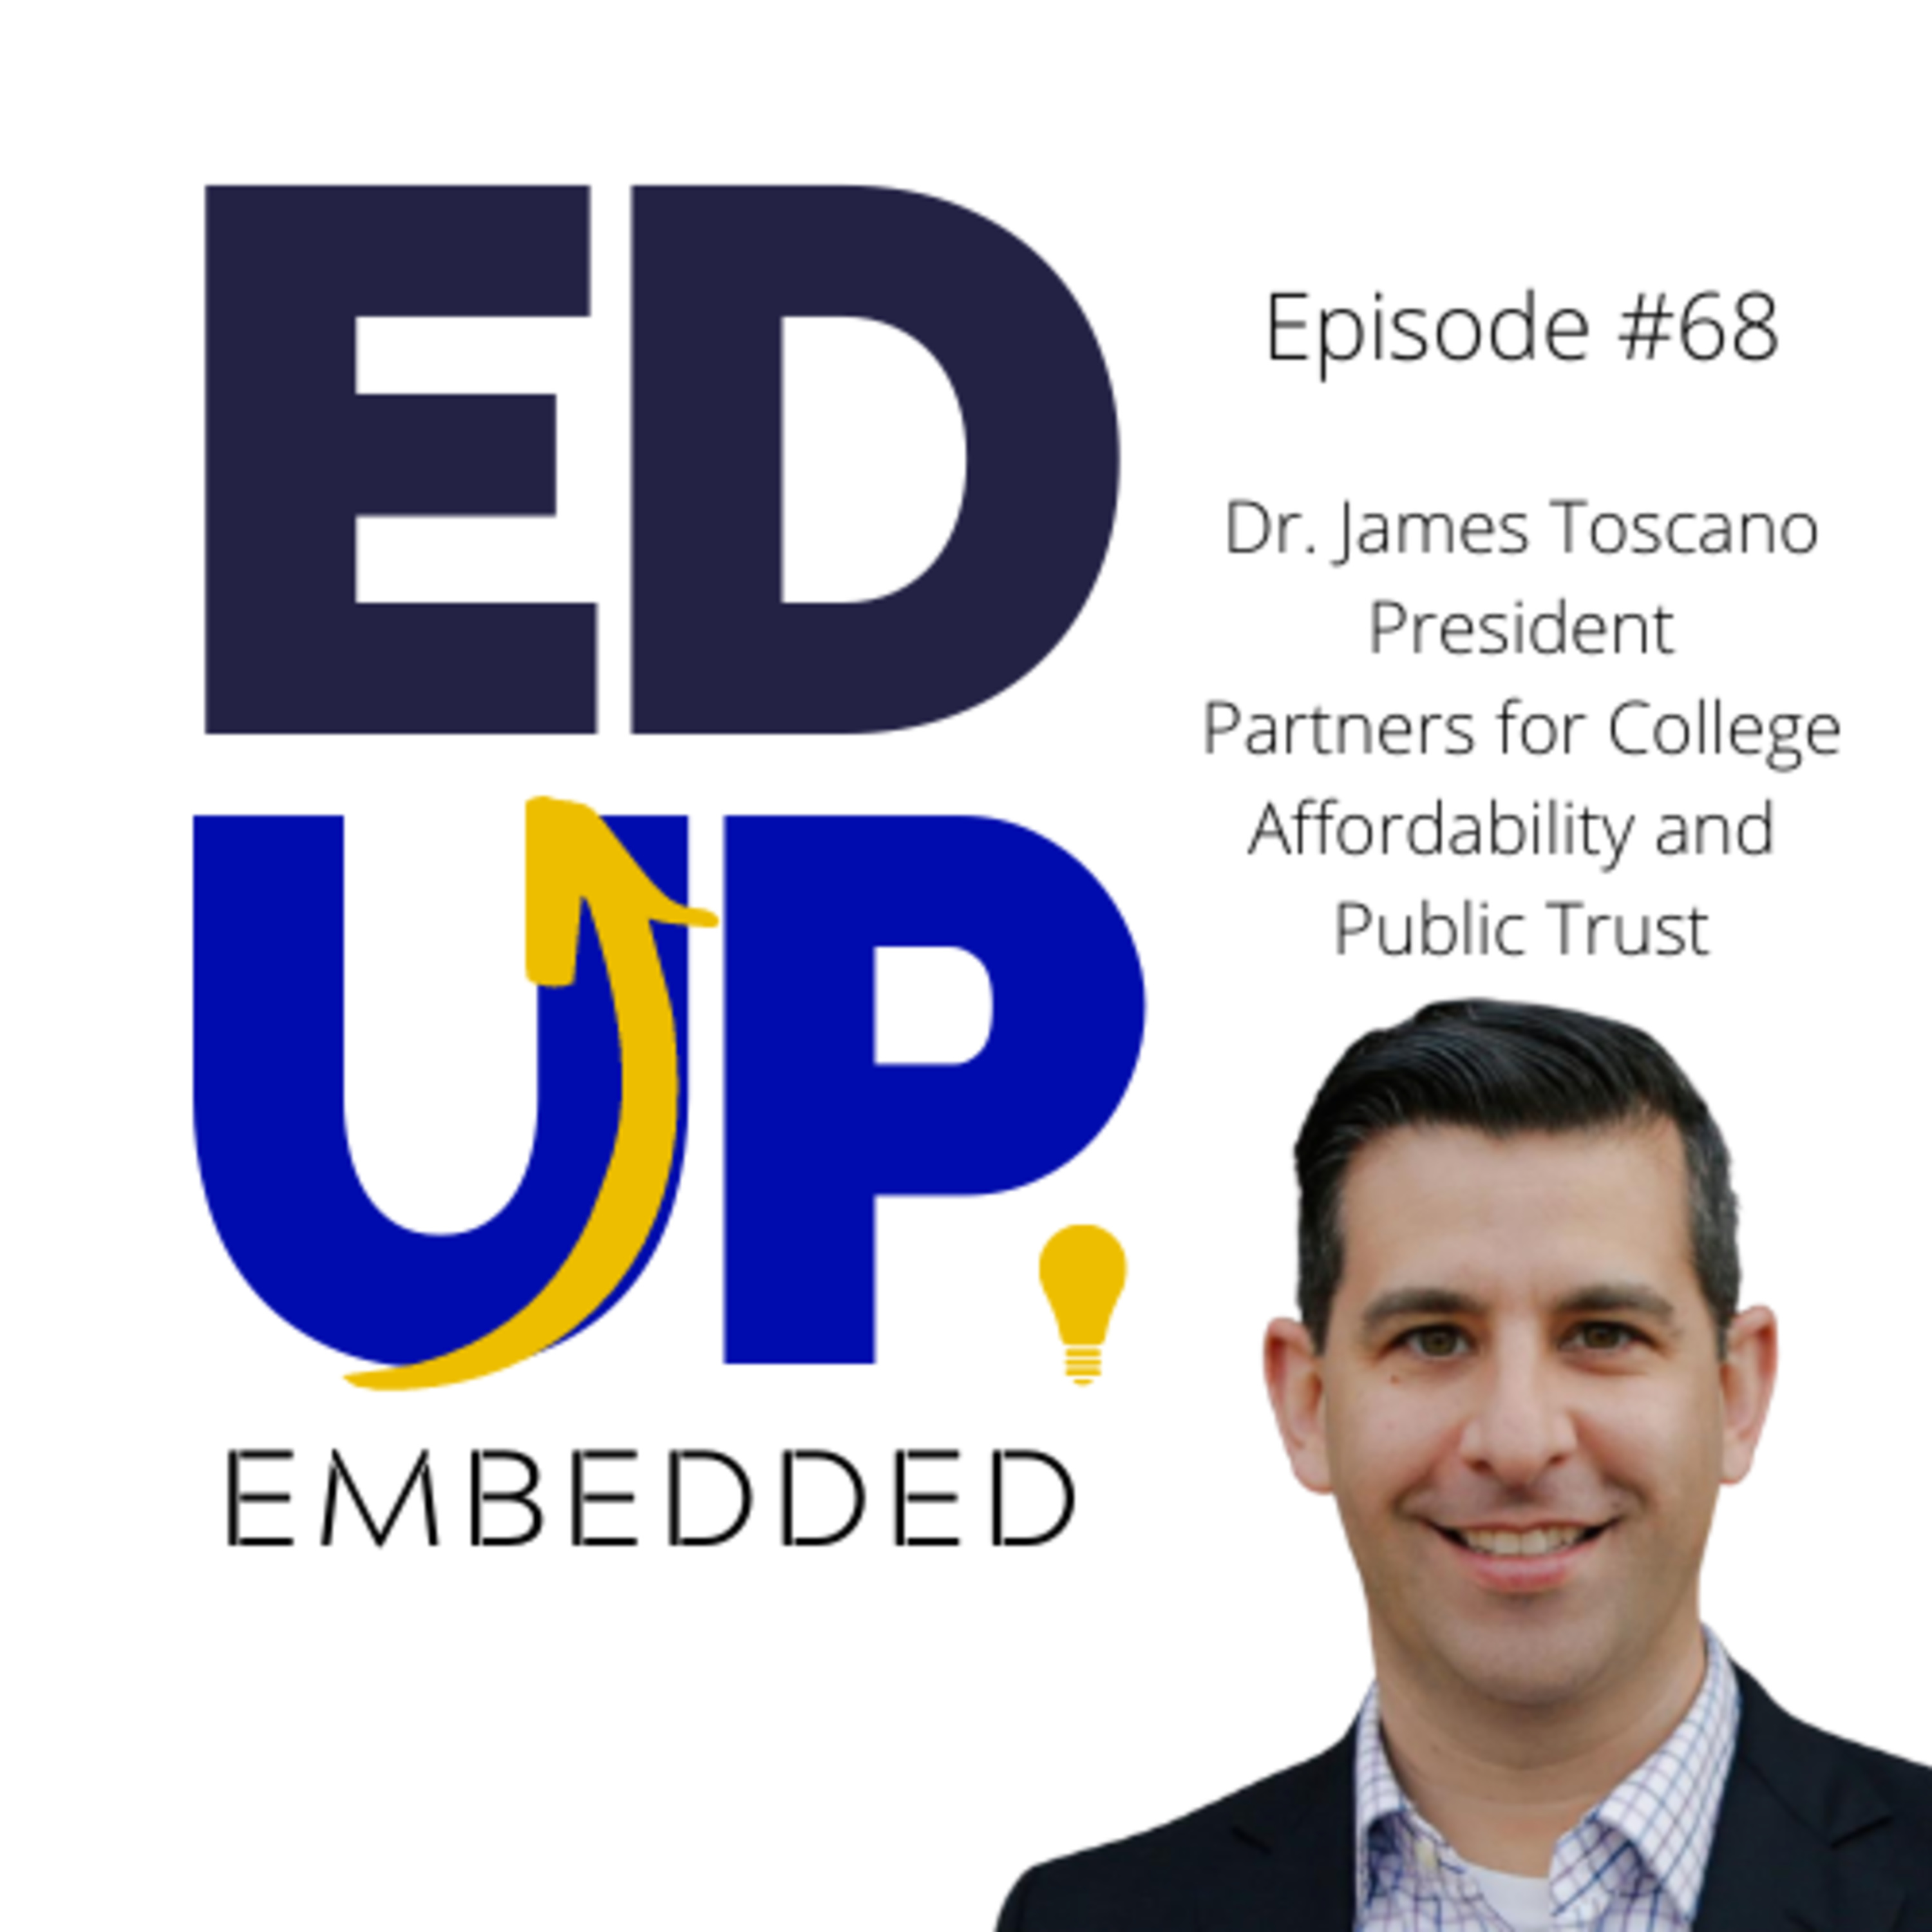 68: Dr. James Toscano, President, Partners for Accountability and Public Trust